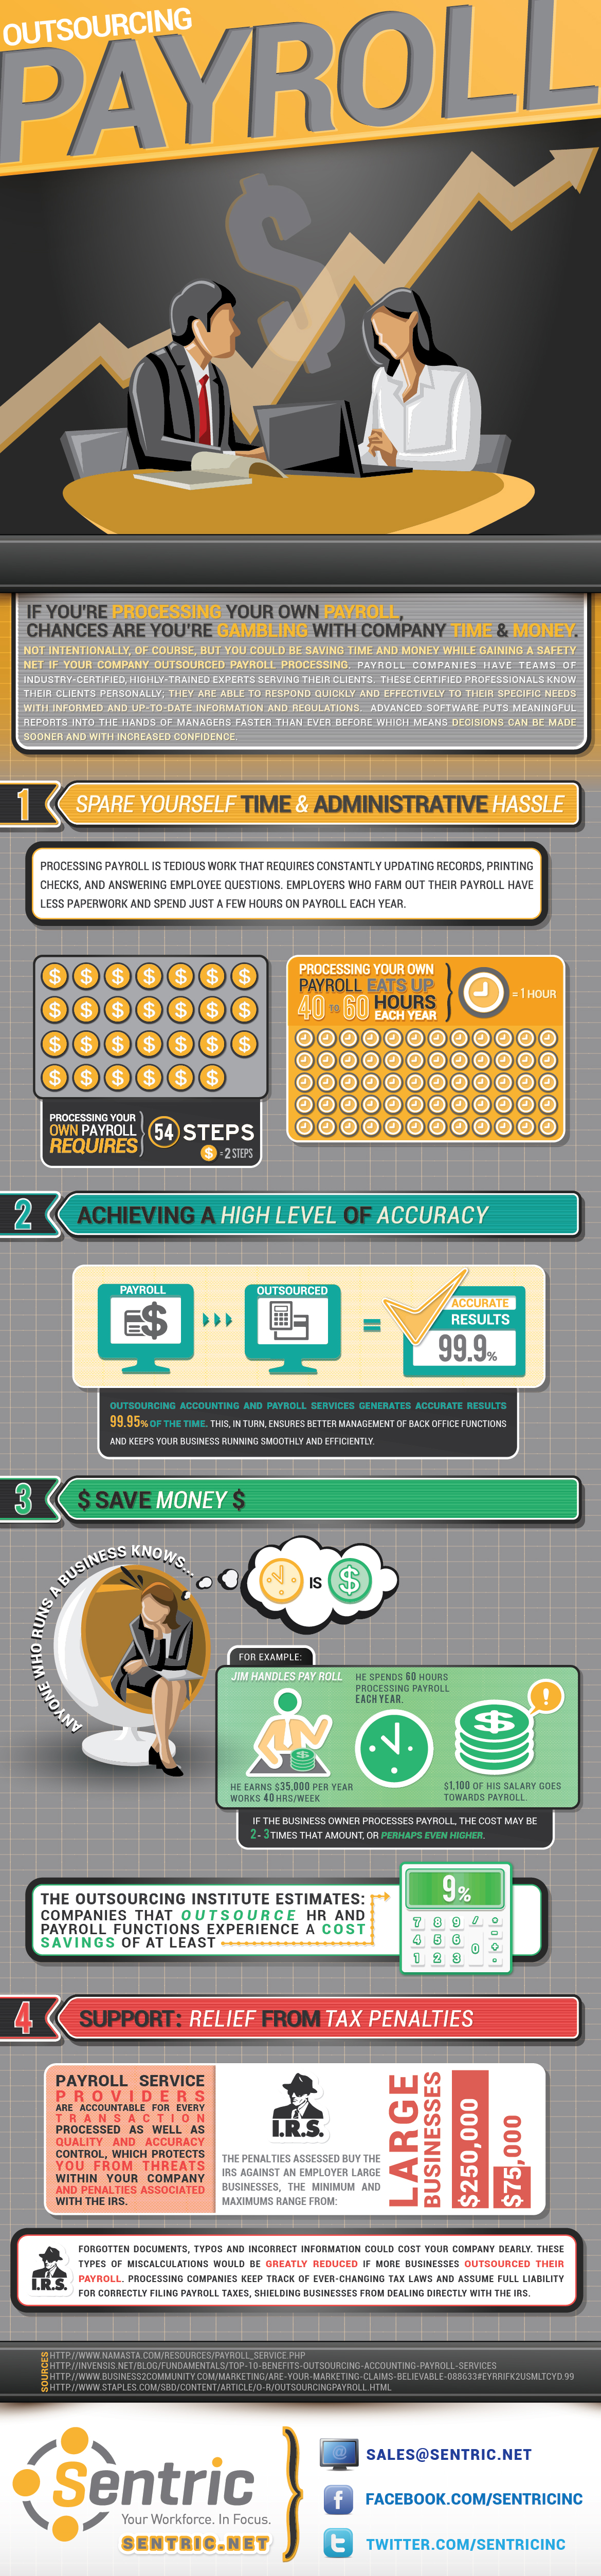 Benefits Of Outsourcing Payroll Financial Accounting Infographic Fun Facts